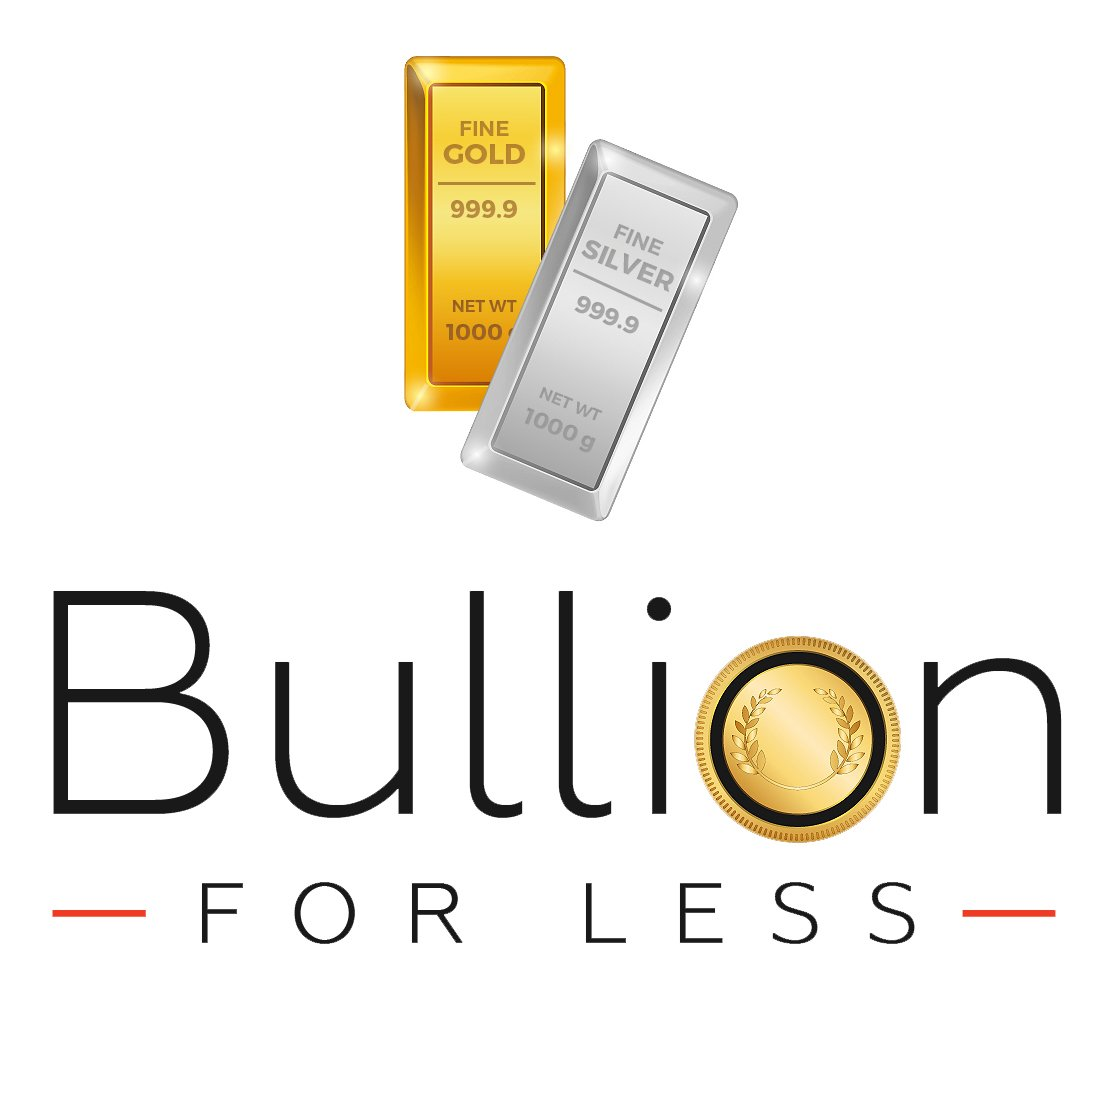 bullion for less logo